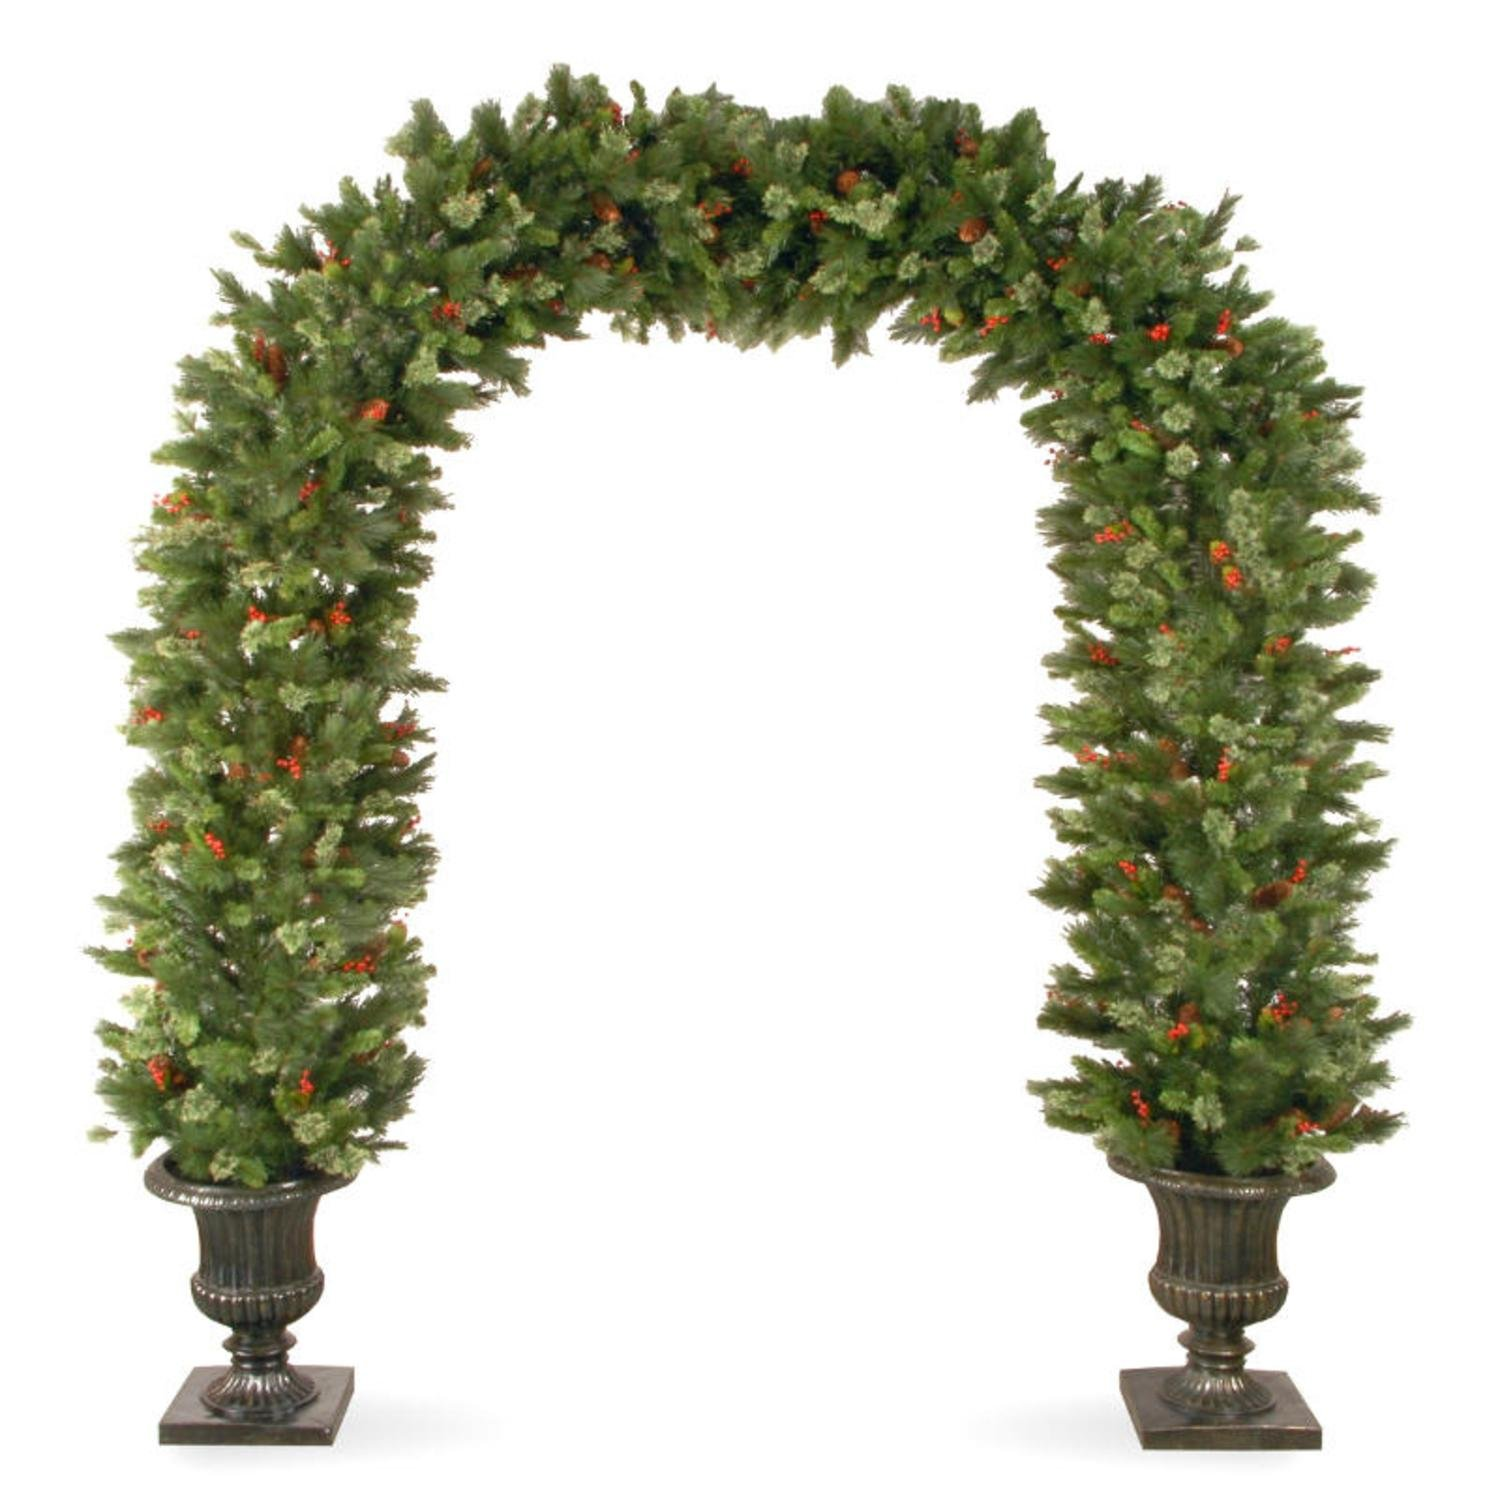 National Tree Company 8.5' Wintry Pine Artificial Christmas Archway with Cones, Berries and Snow - Unlit